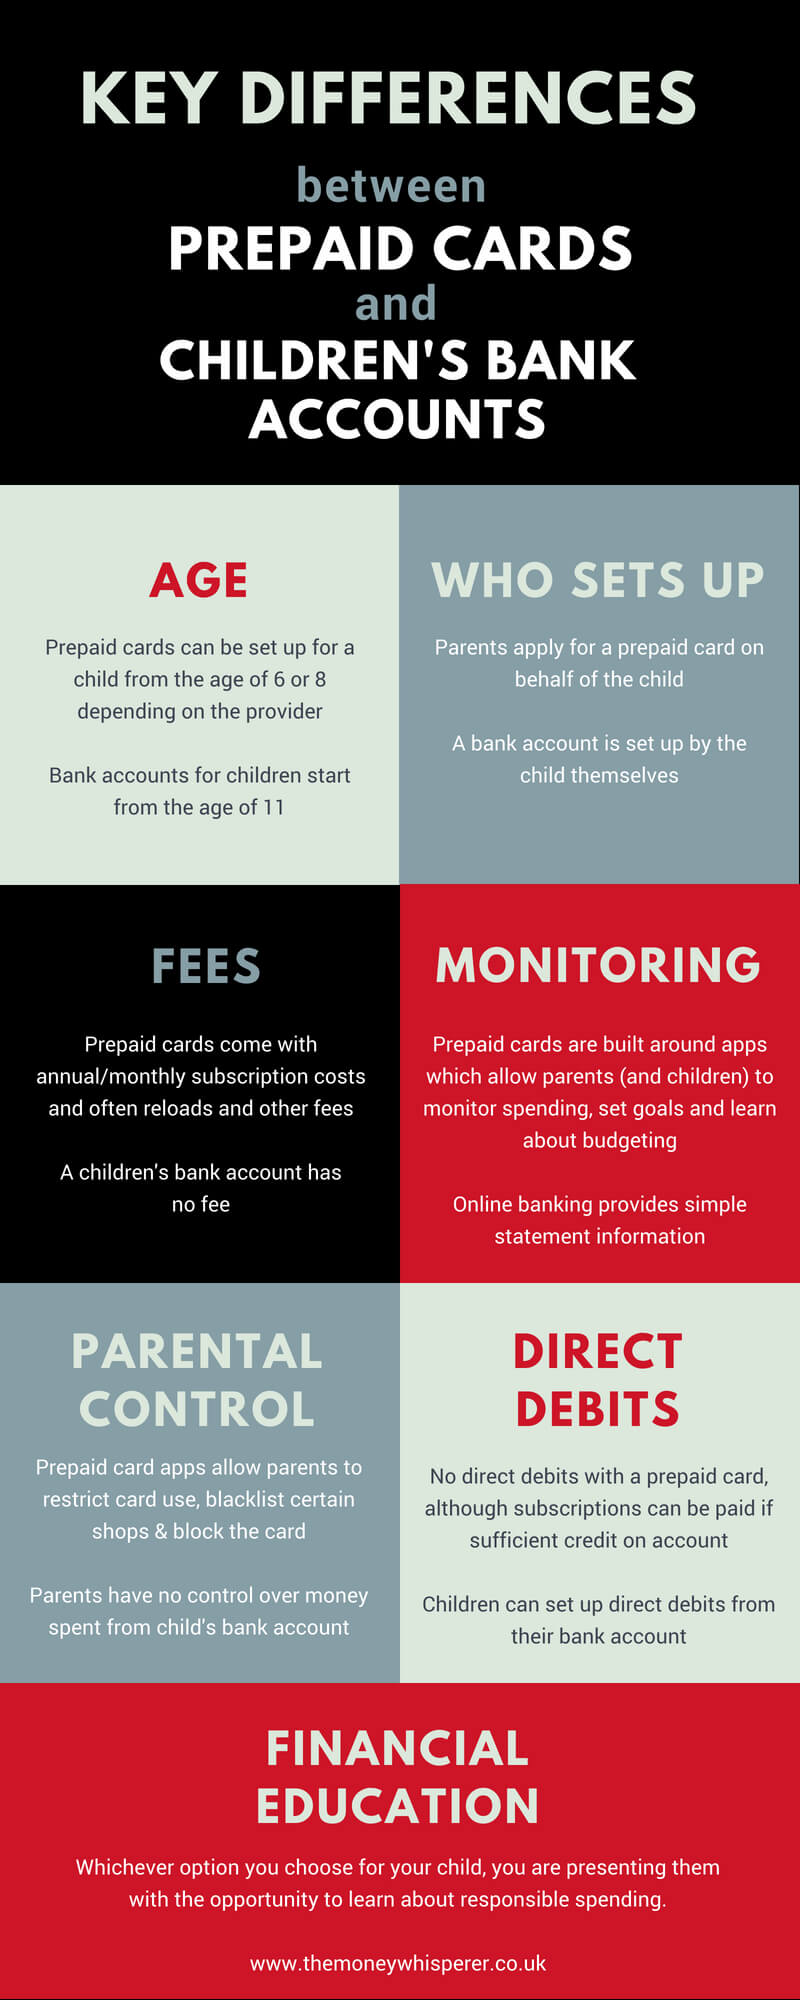 Bank account or prepaid card for children - what are the key differences